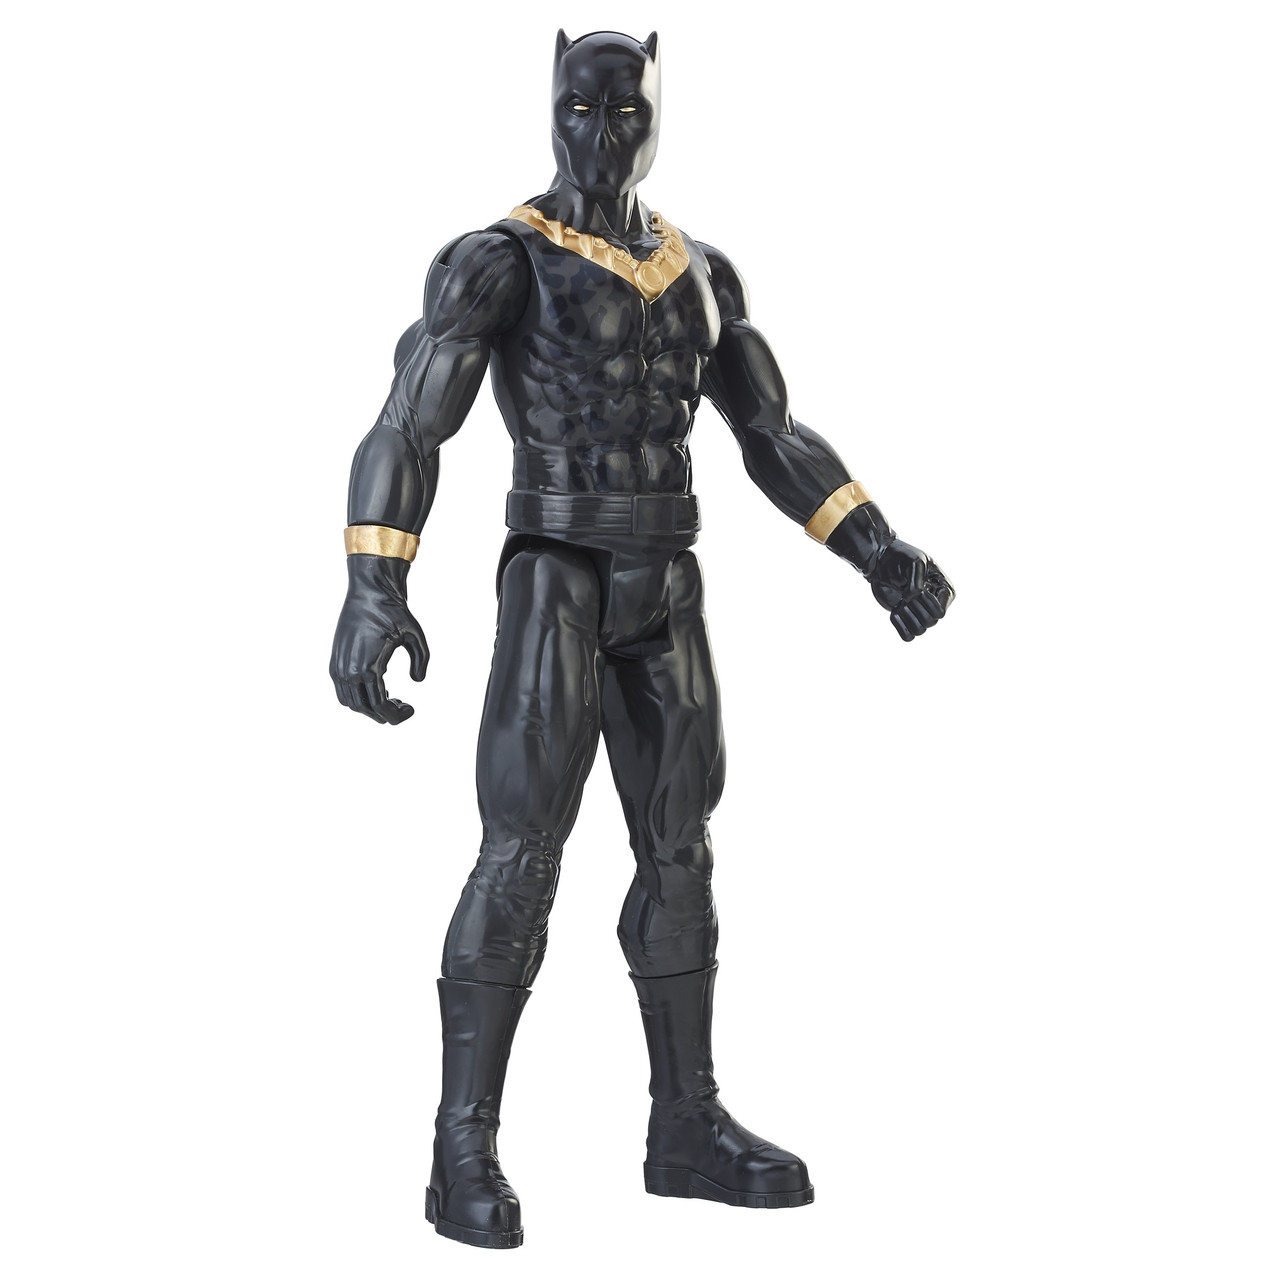 Игрушка-фигурка Hasbro, Эрик Килмонгер, Марвел, 30 см - Eric Killmonger, Marvel, Titan Hero Series